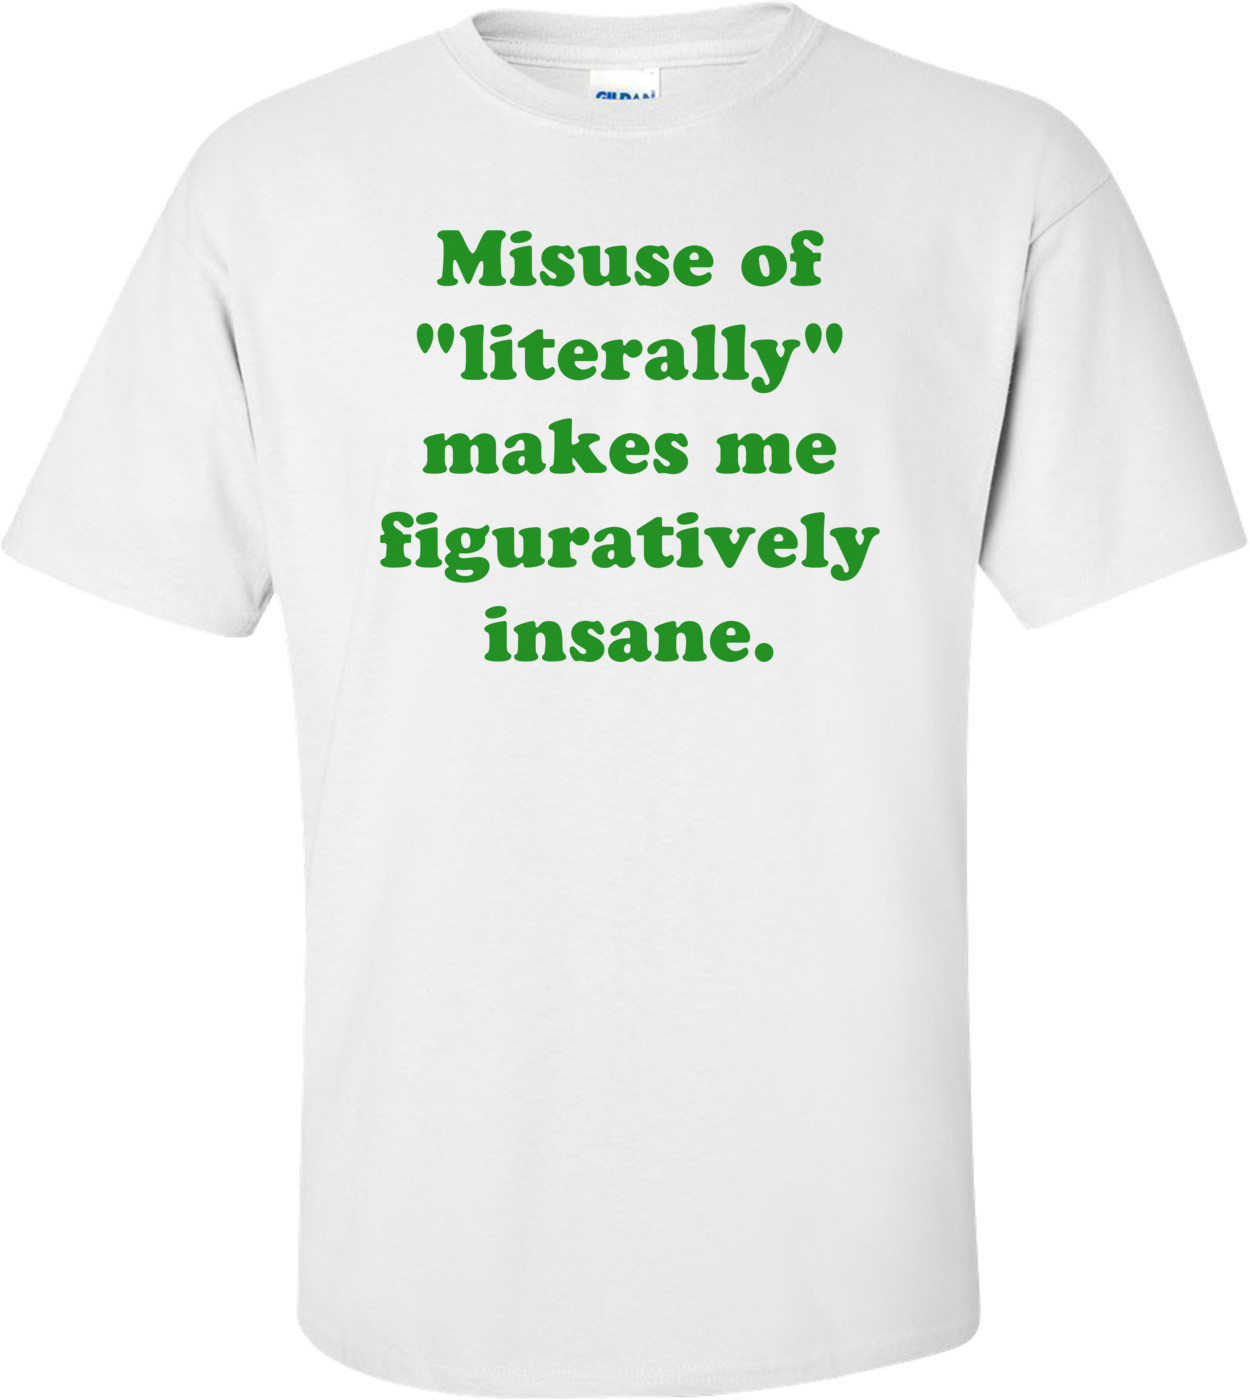 "Misuse Of ""Literally"" Makes Me Figuratively Insane. Shirt"